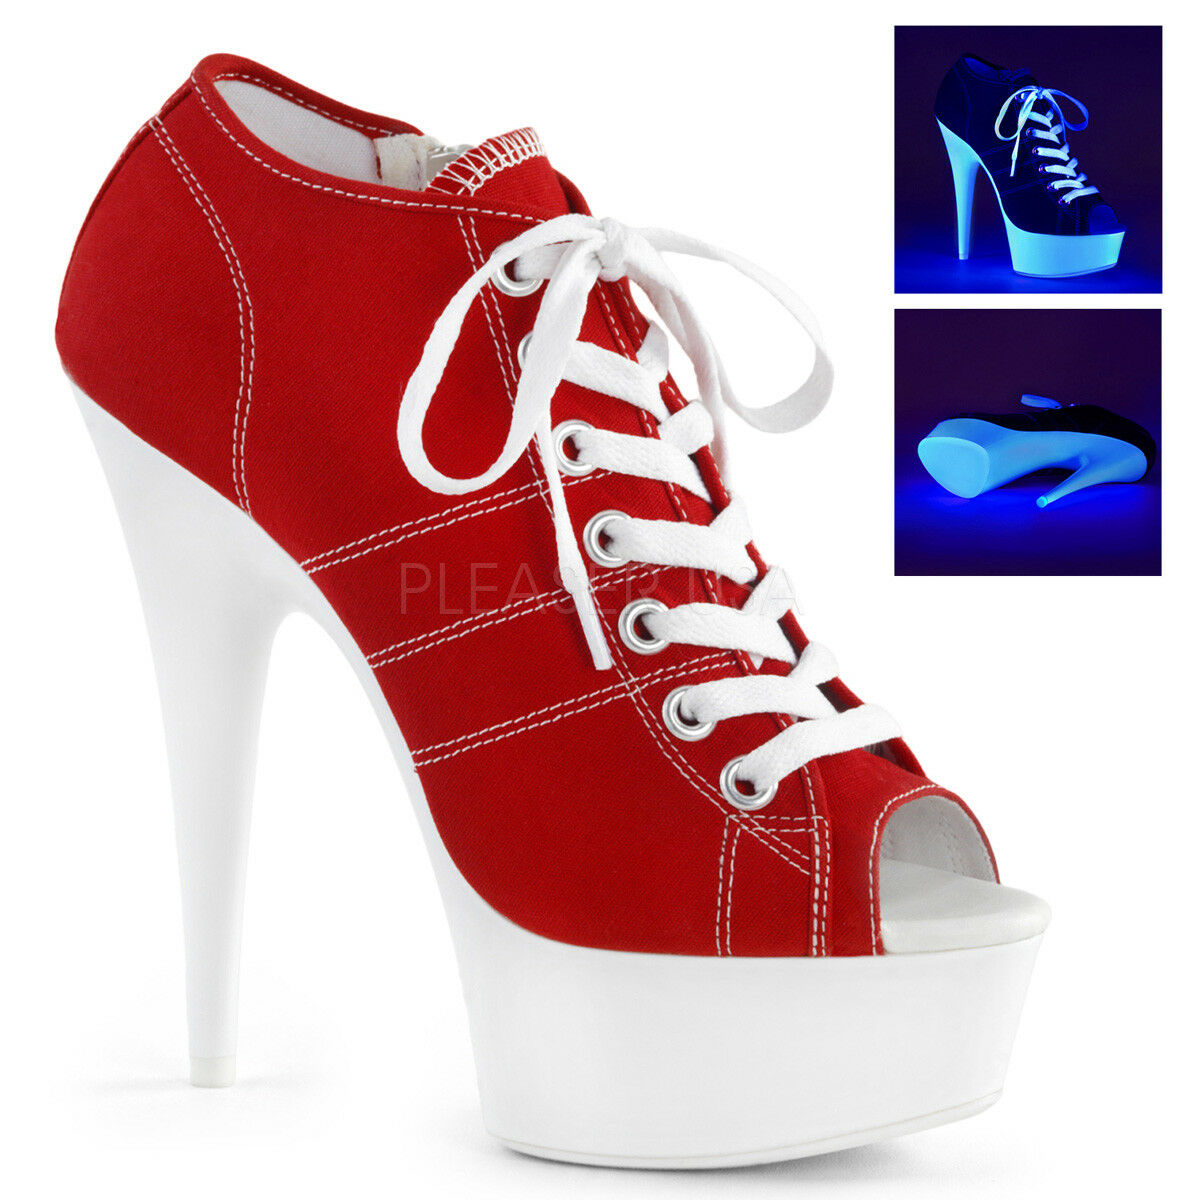 PLEASER 6  Heel Lace Up Peep Toe Platform Blacklight Red Canvas Sneaker shoes